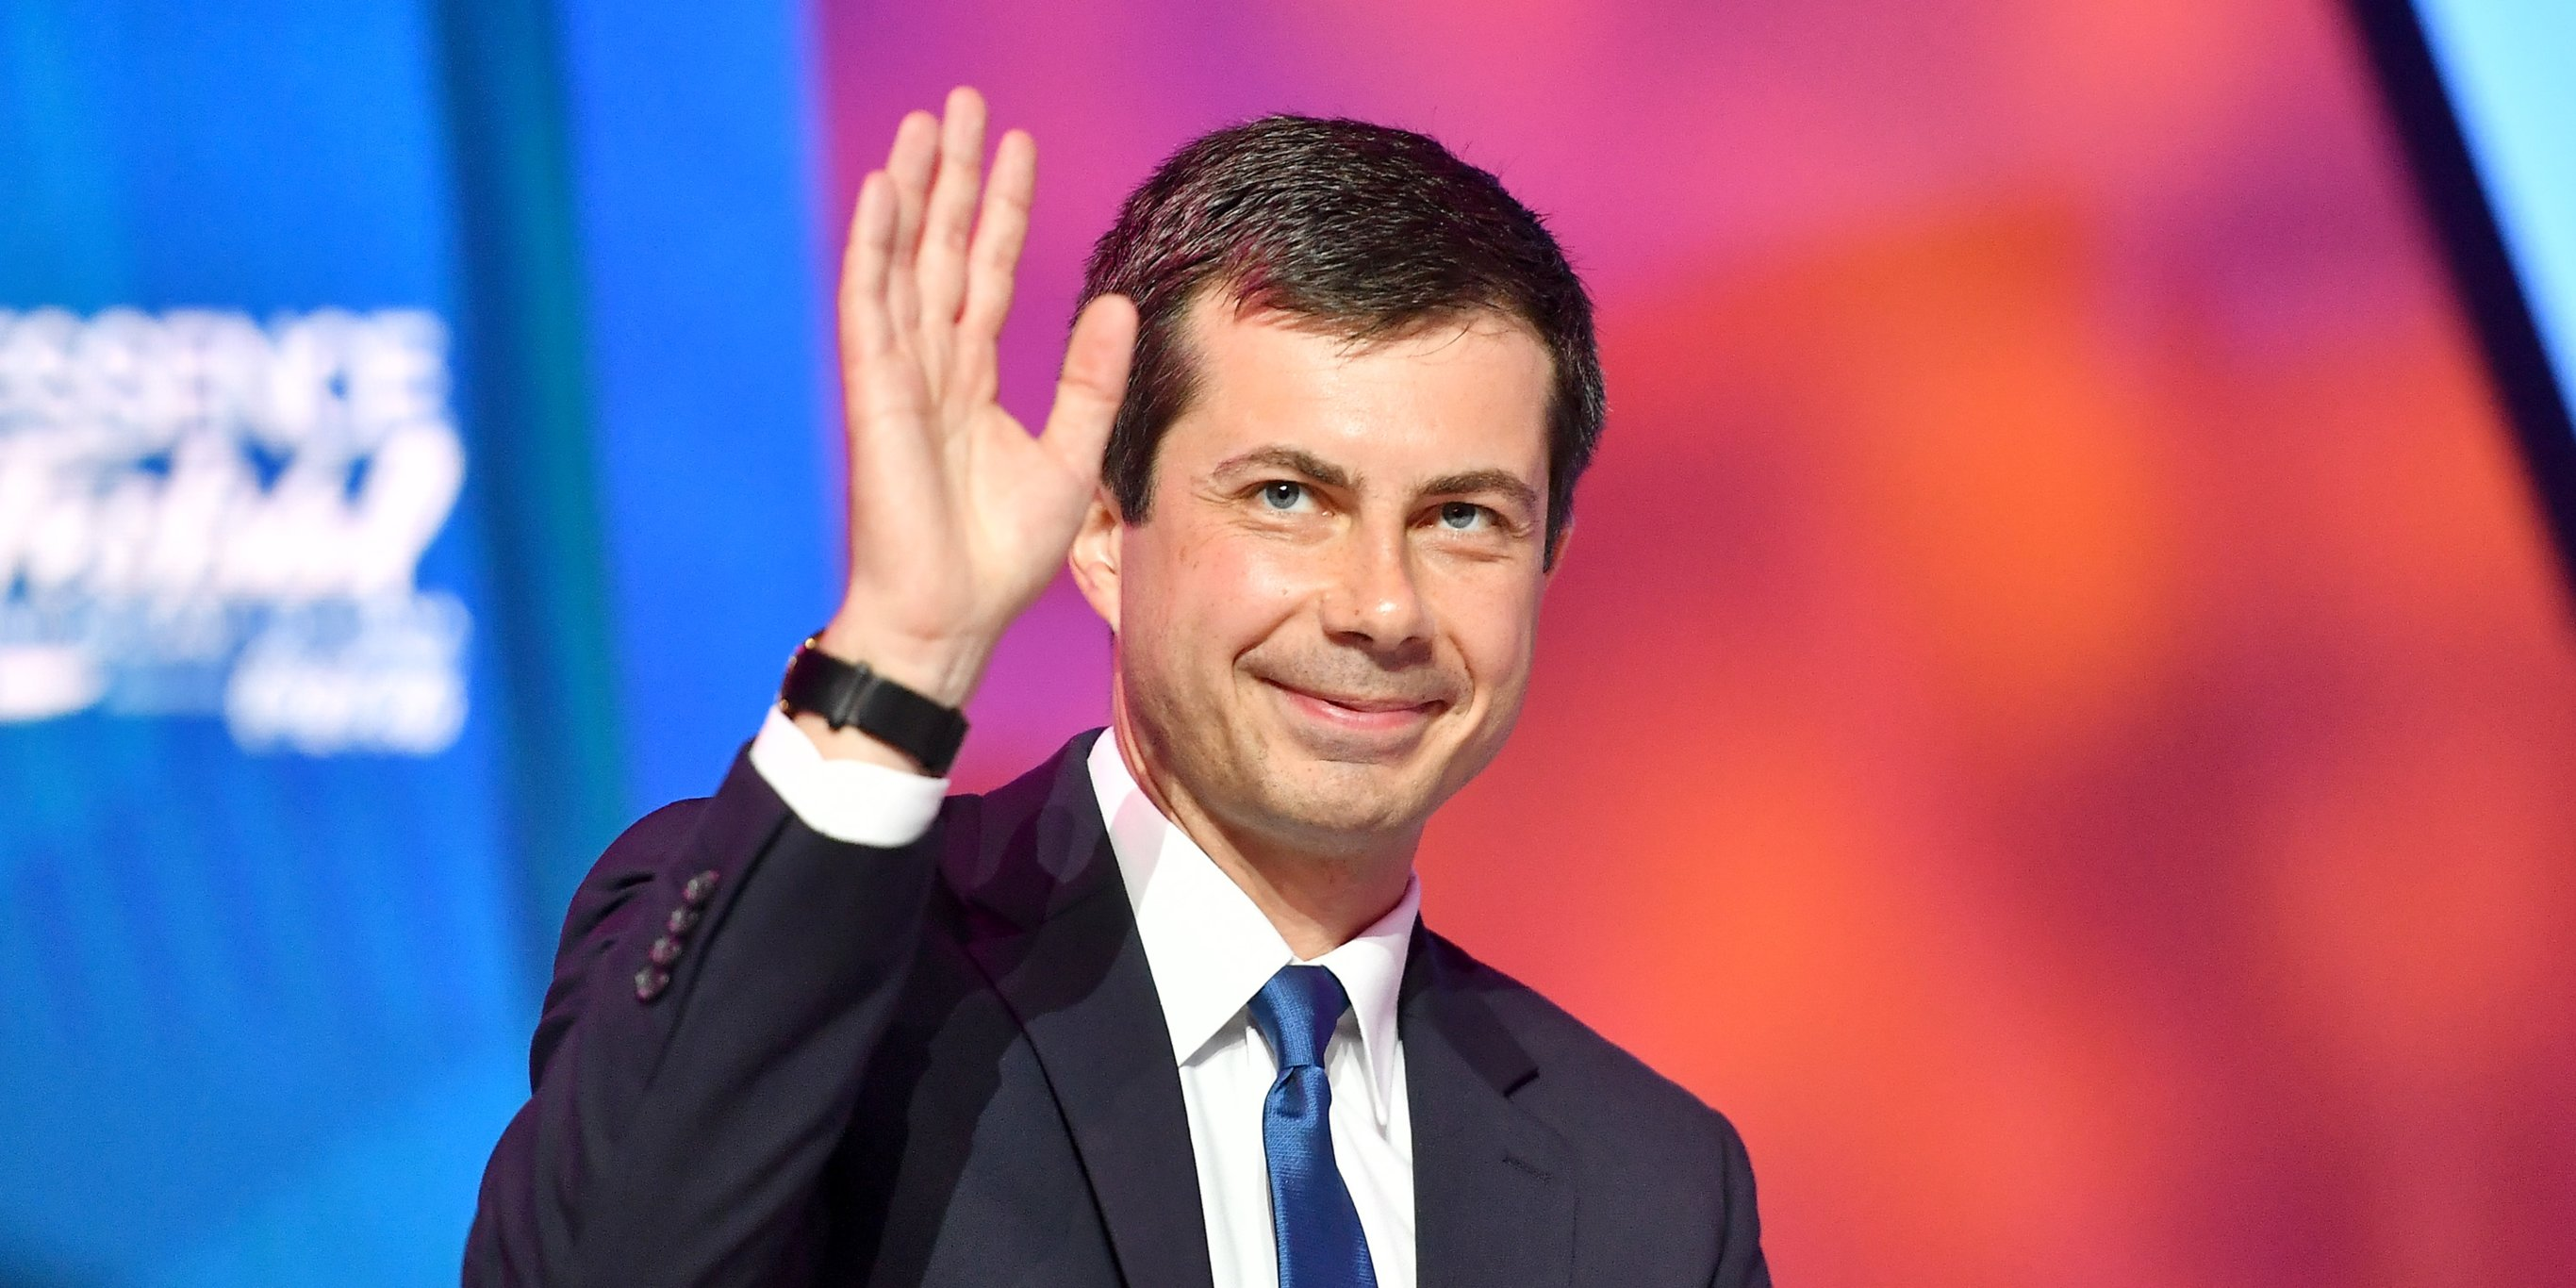 Hinge downloads more than tripled last quarter after Pete Buttigieg revealed he met his husband on the dating app